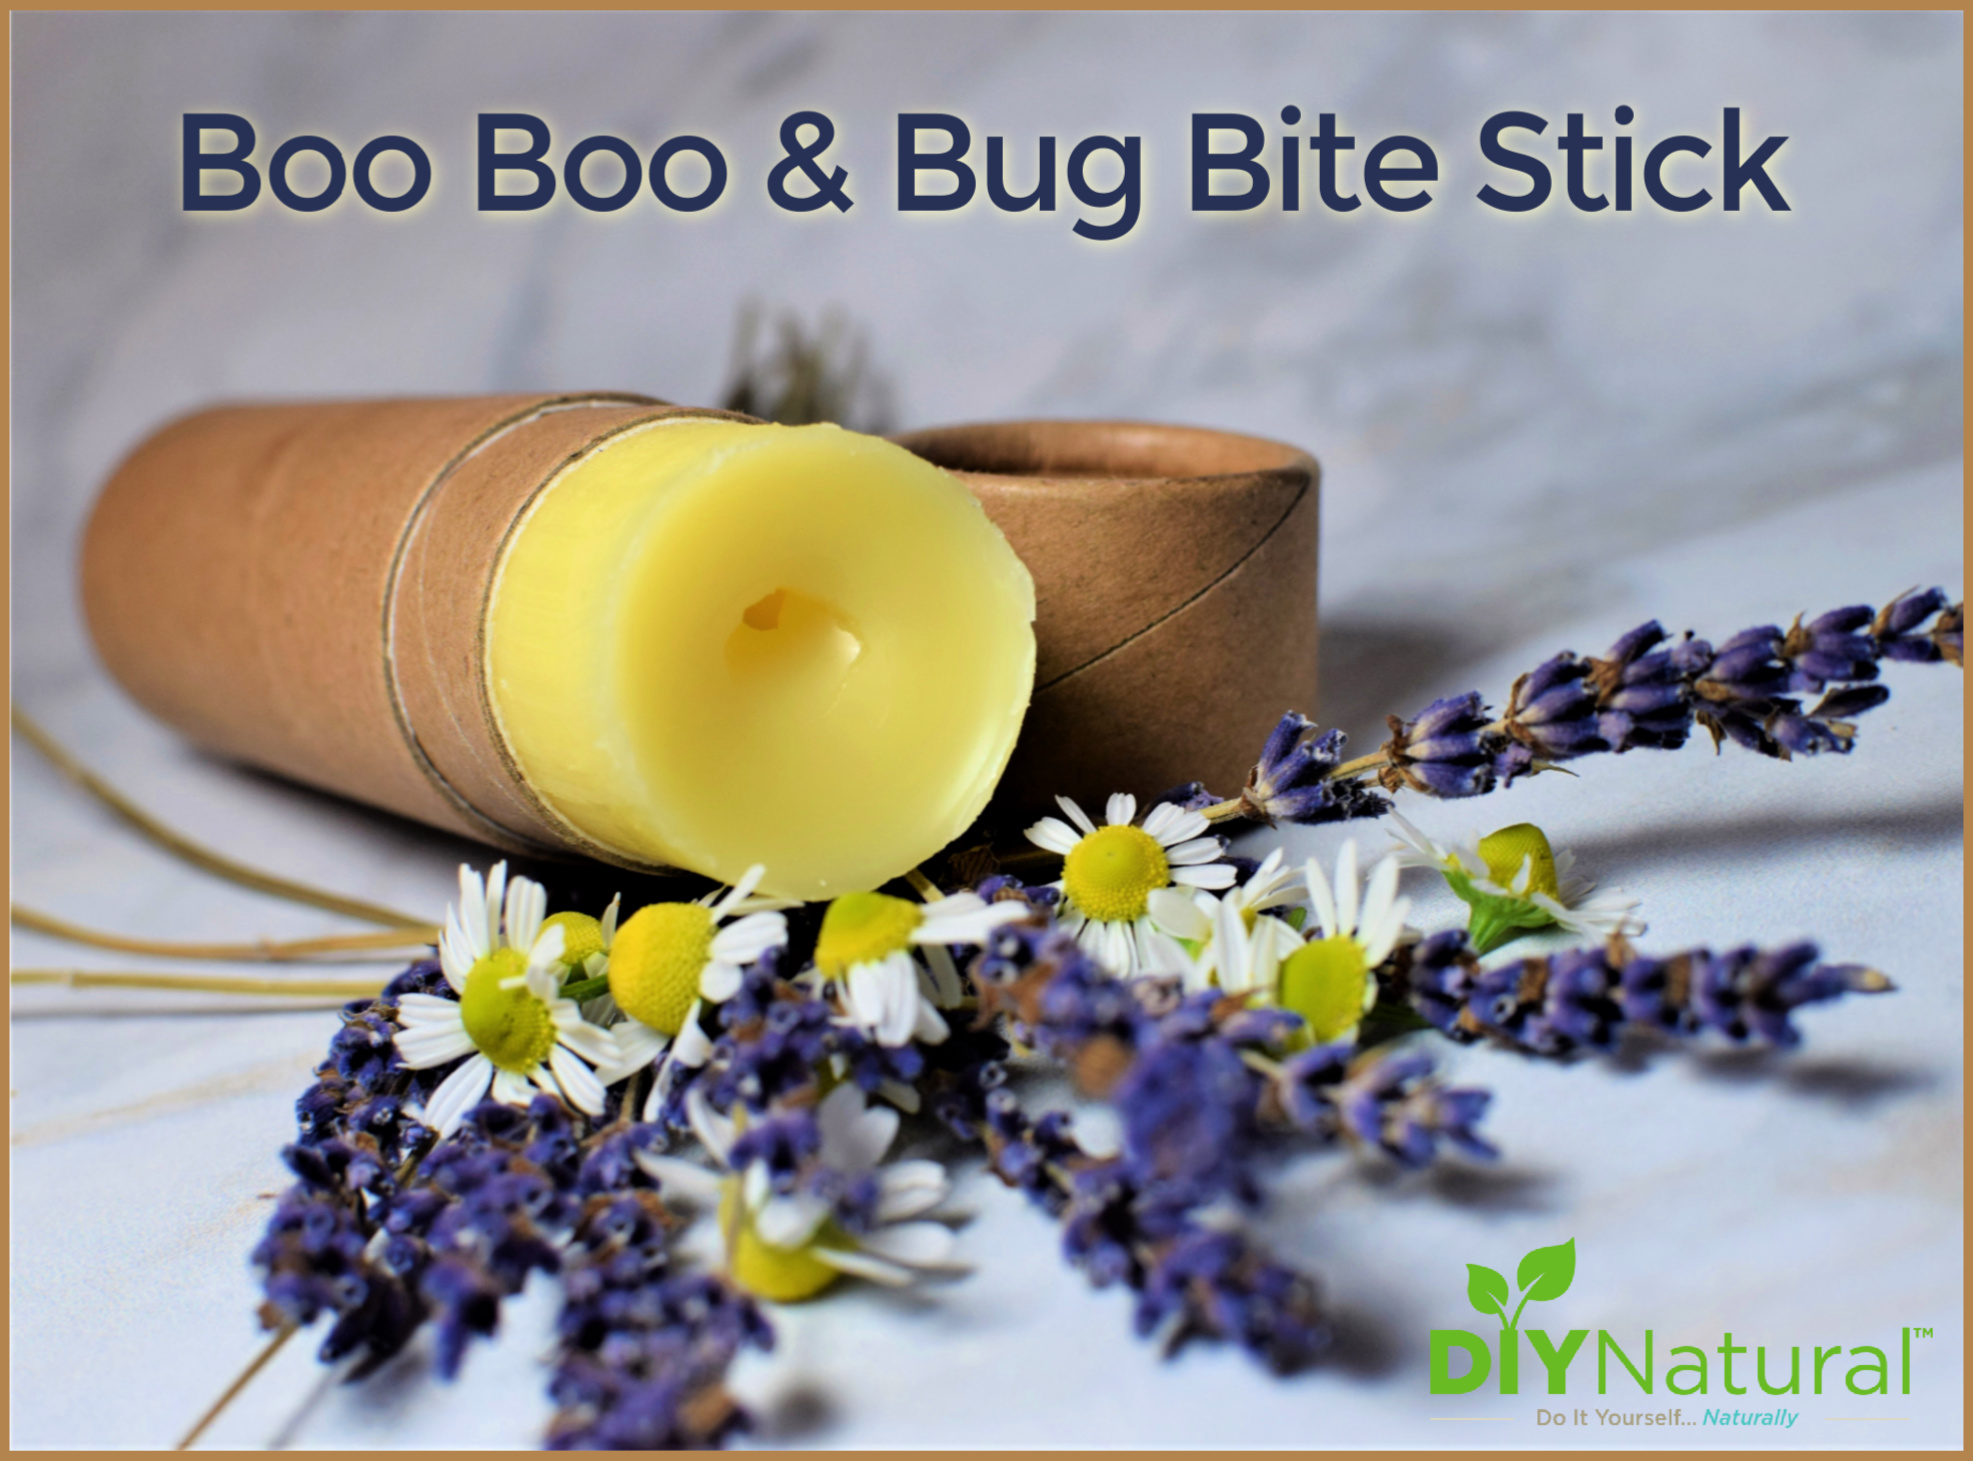 A Soothing DIY Bug Bite and Boo Boo Stick Recipe